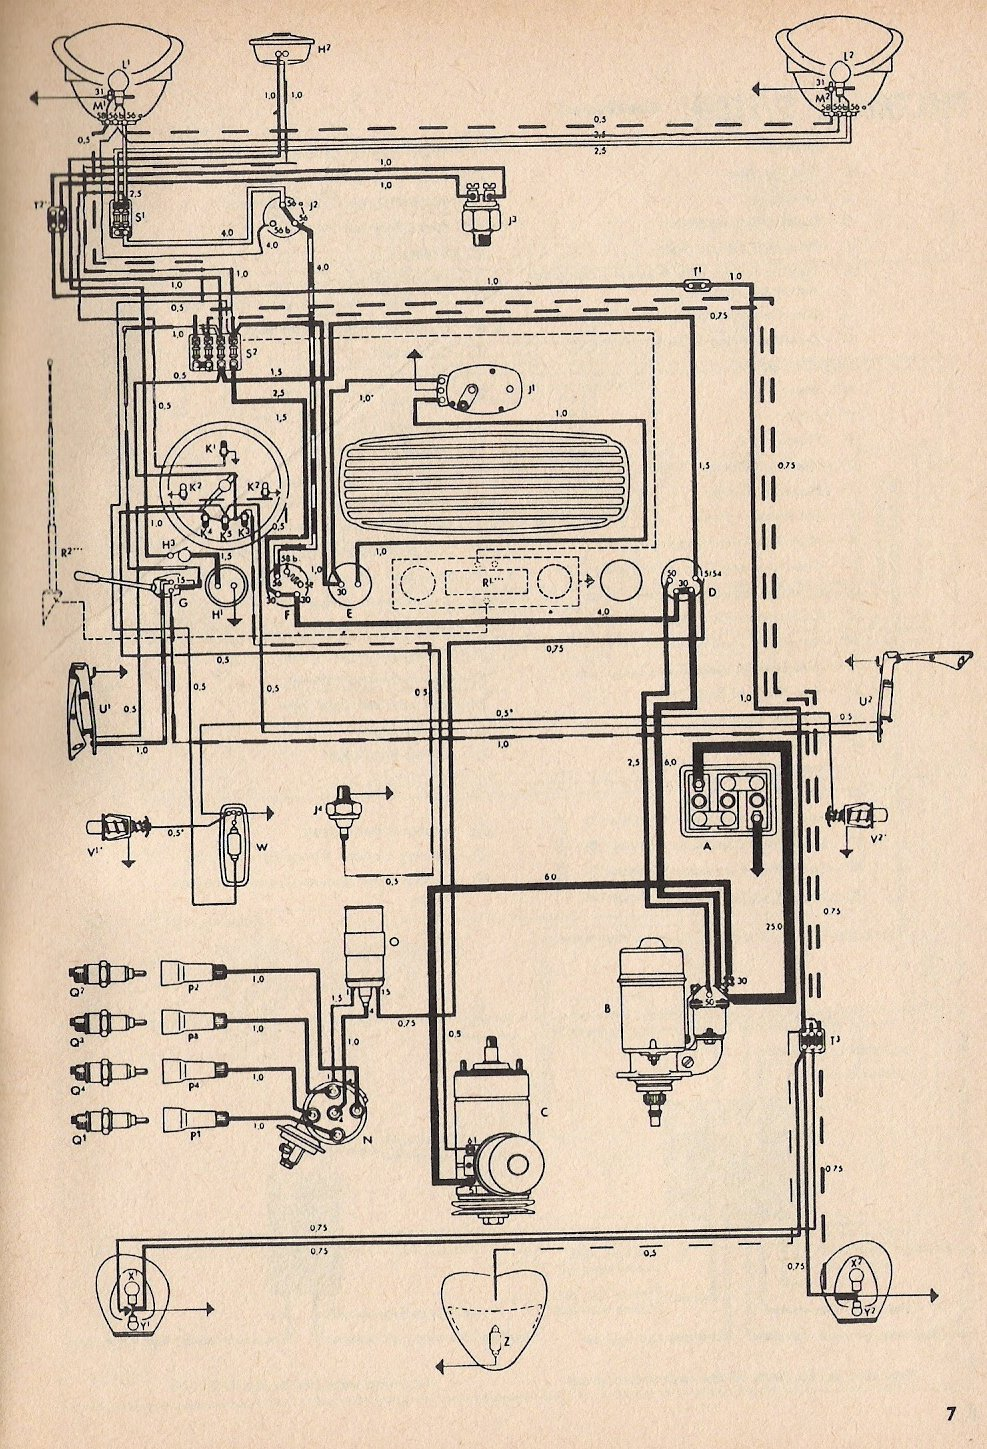 medium resolution of 72 vw bus diagram wiring diagram for professional u2022 rh bestbreweries co 1972 vw engine diagram 1972 vw engine diagram